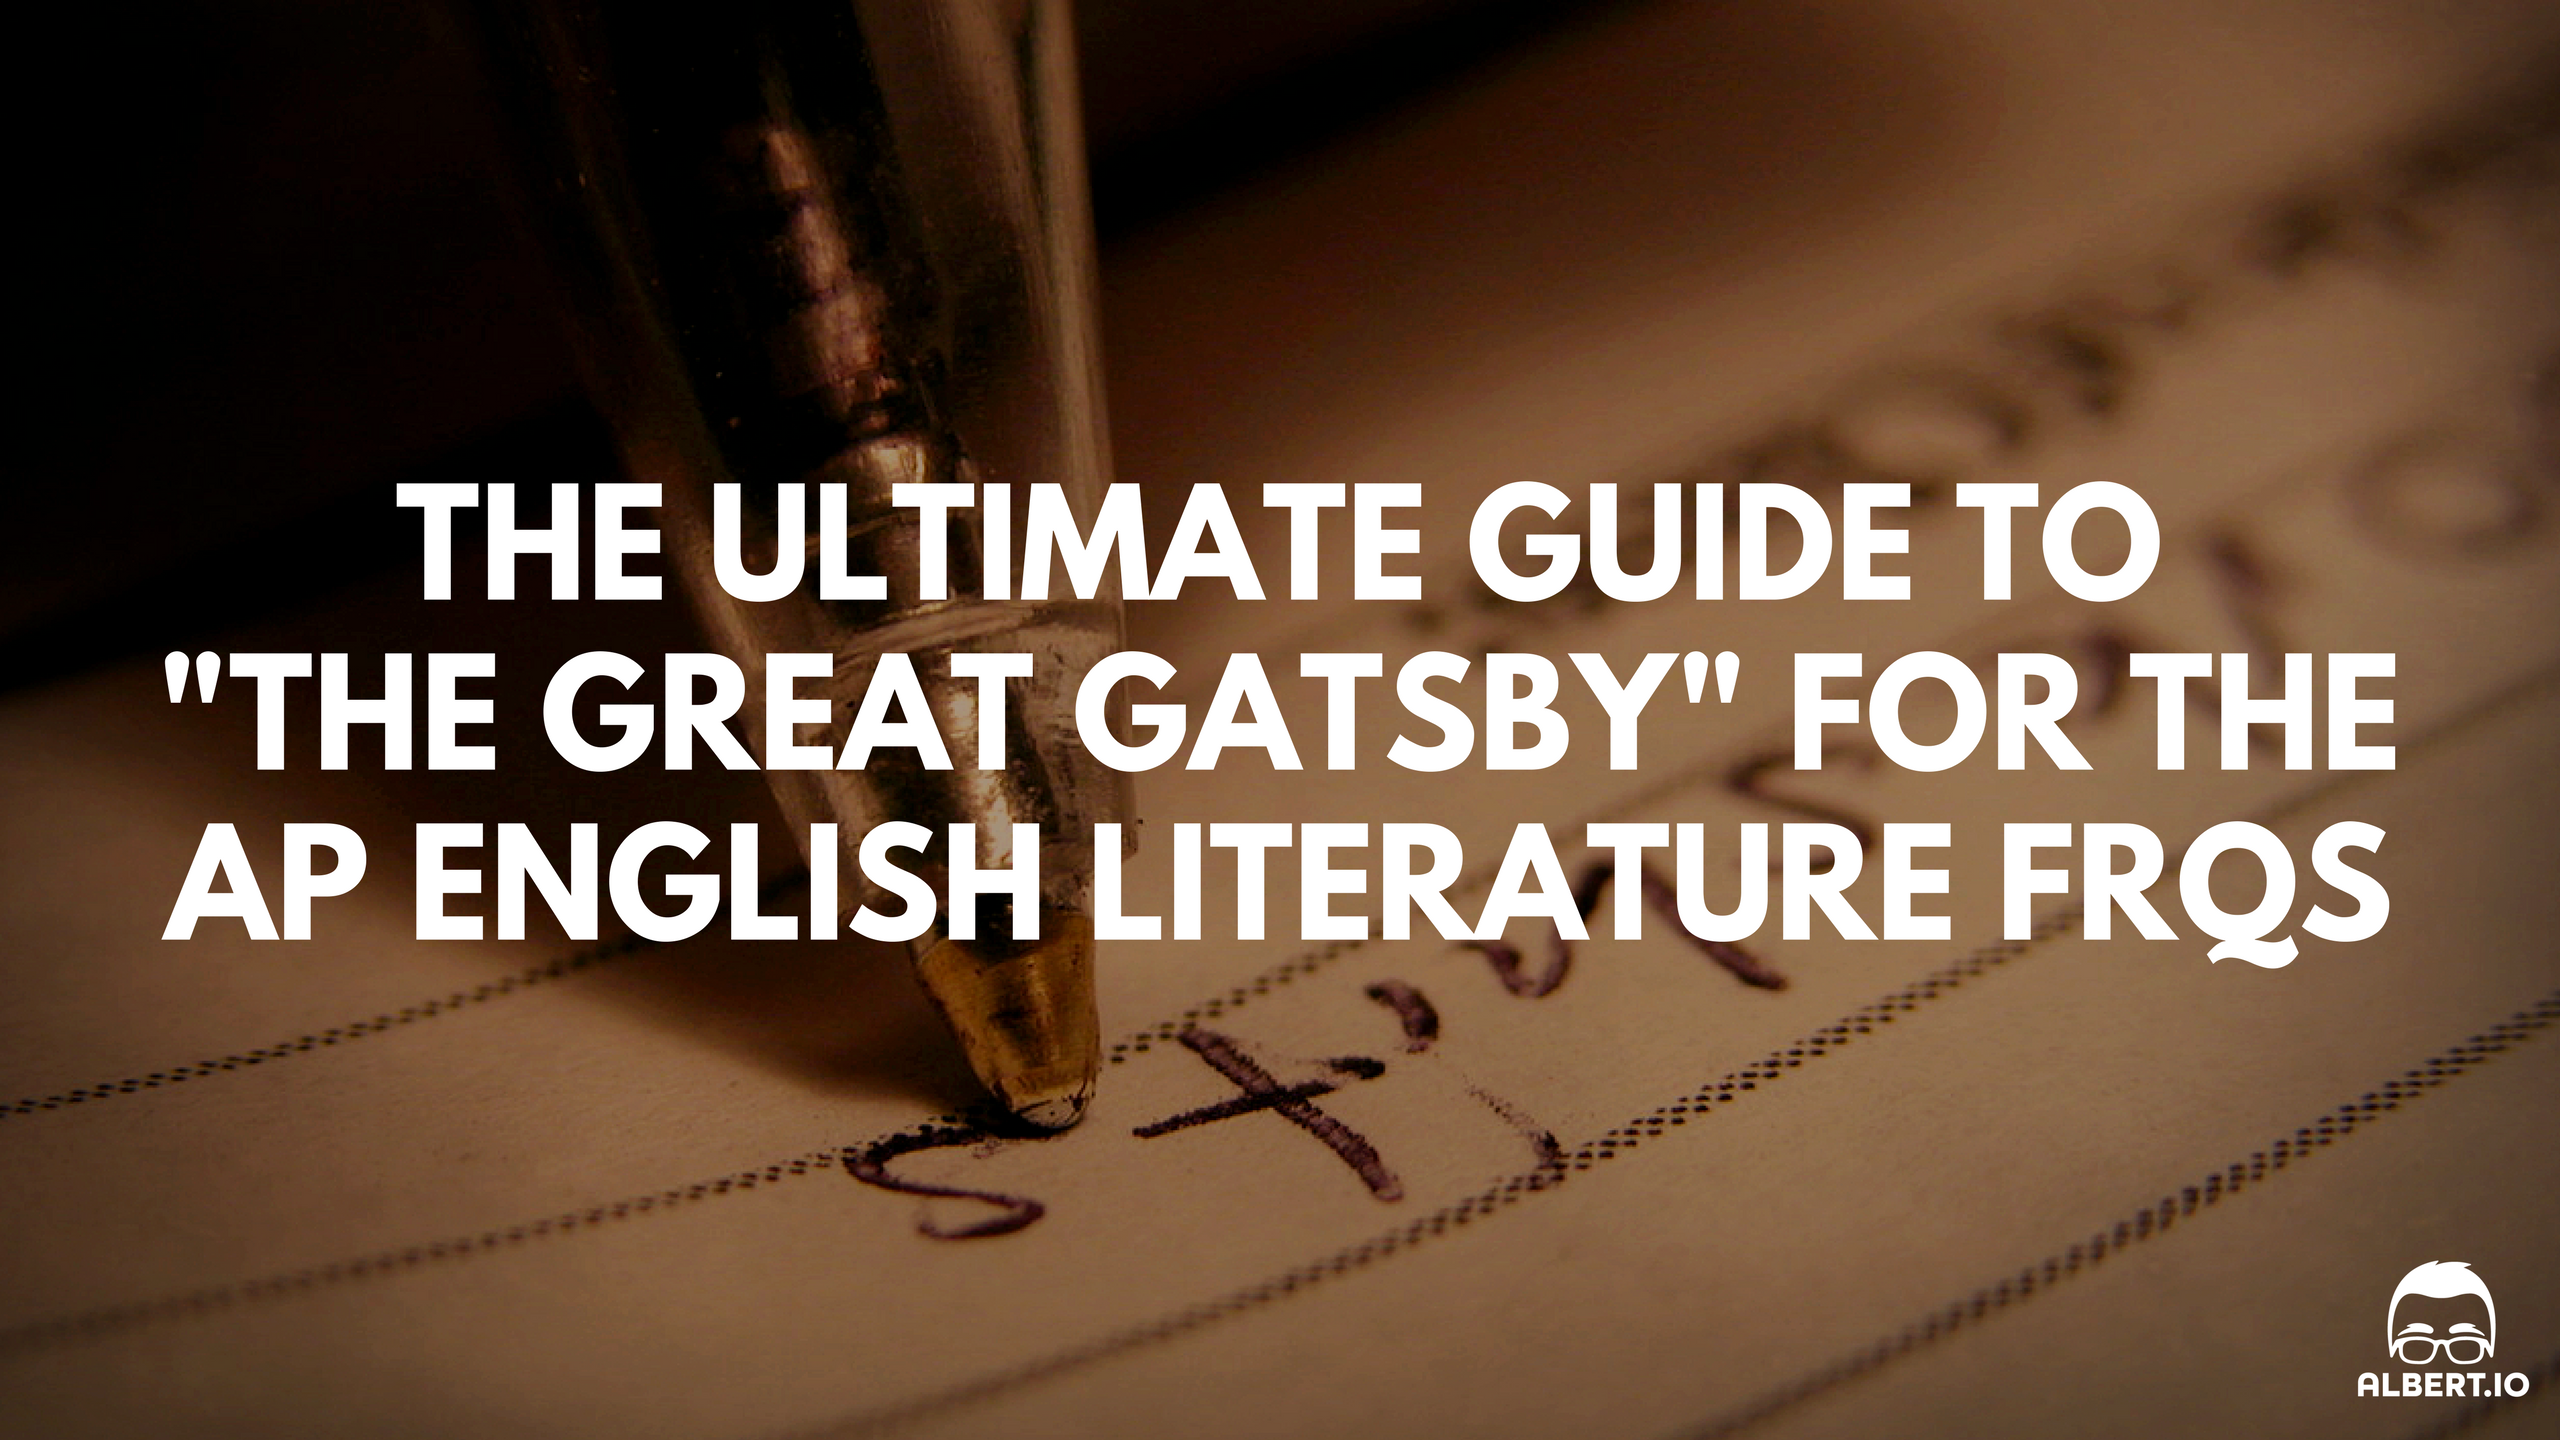 ap english literature archives io the ultimate guide to the great gatsby for the ap english literature response questions